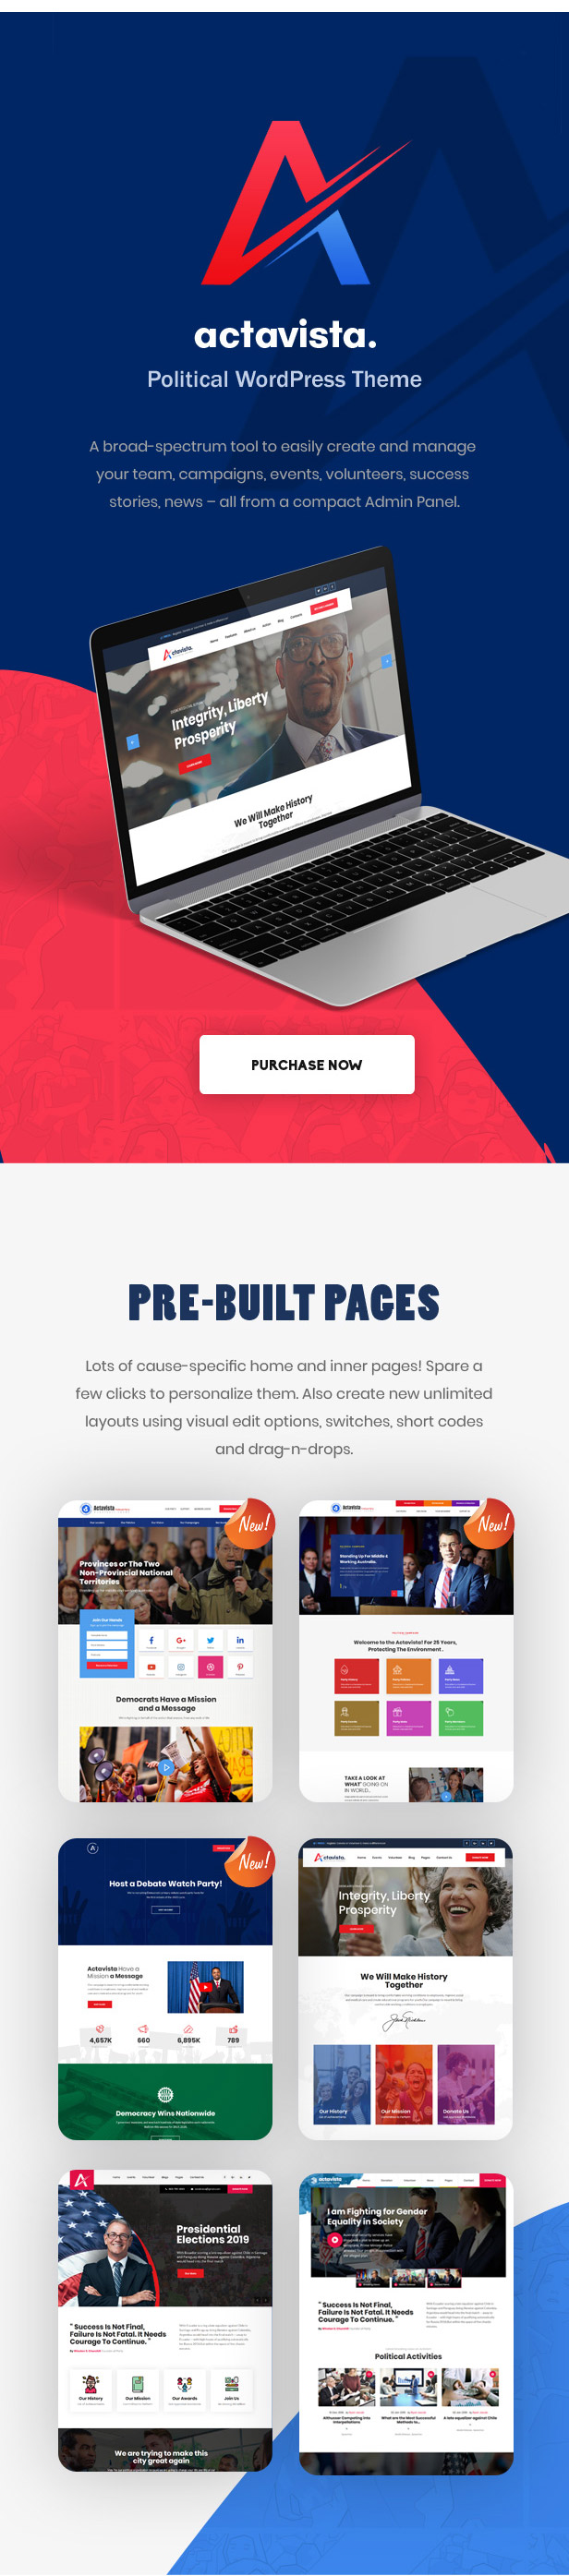 Actavista - A Responsive Political WordPress Theme For Politicians and Organizations - 11